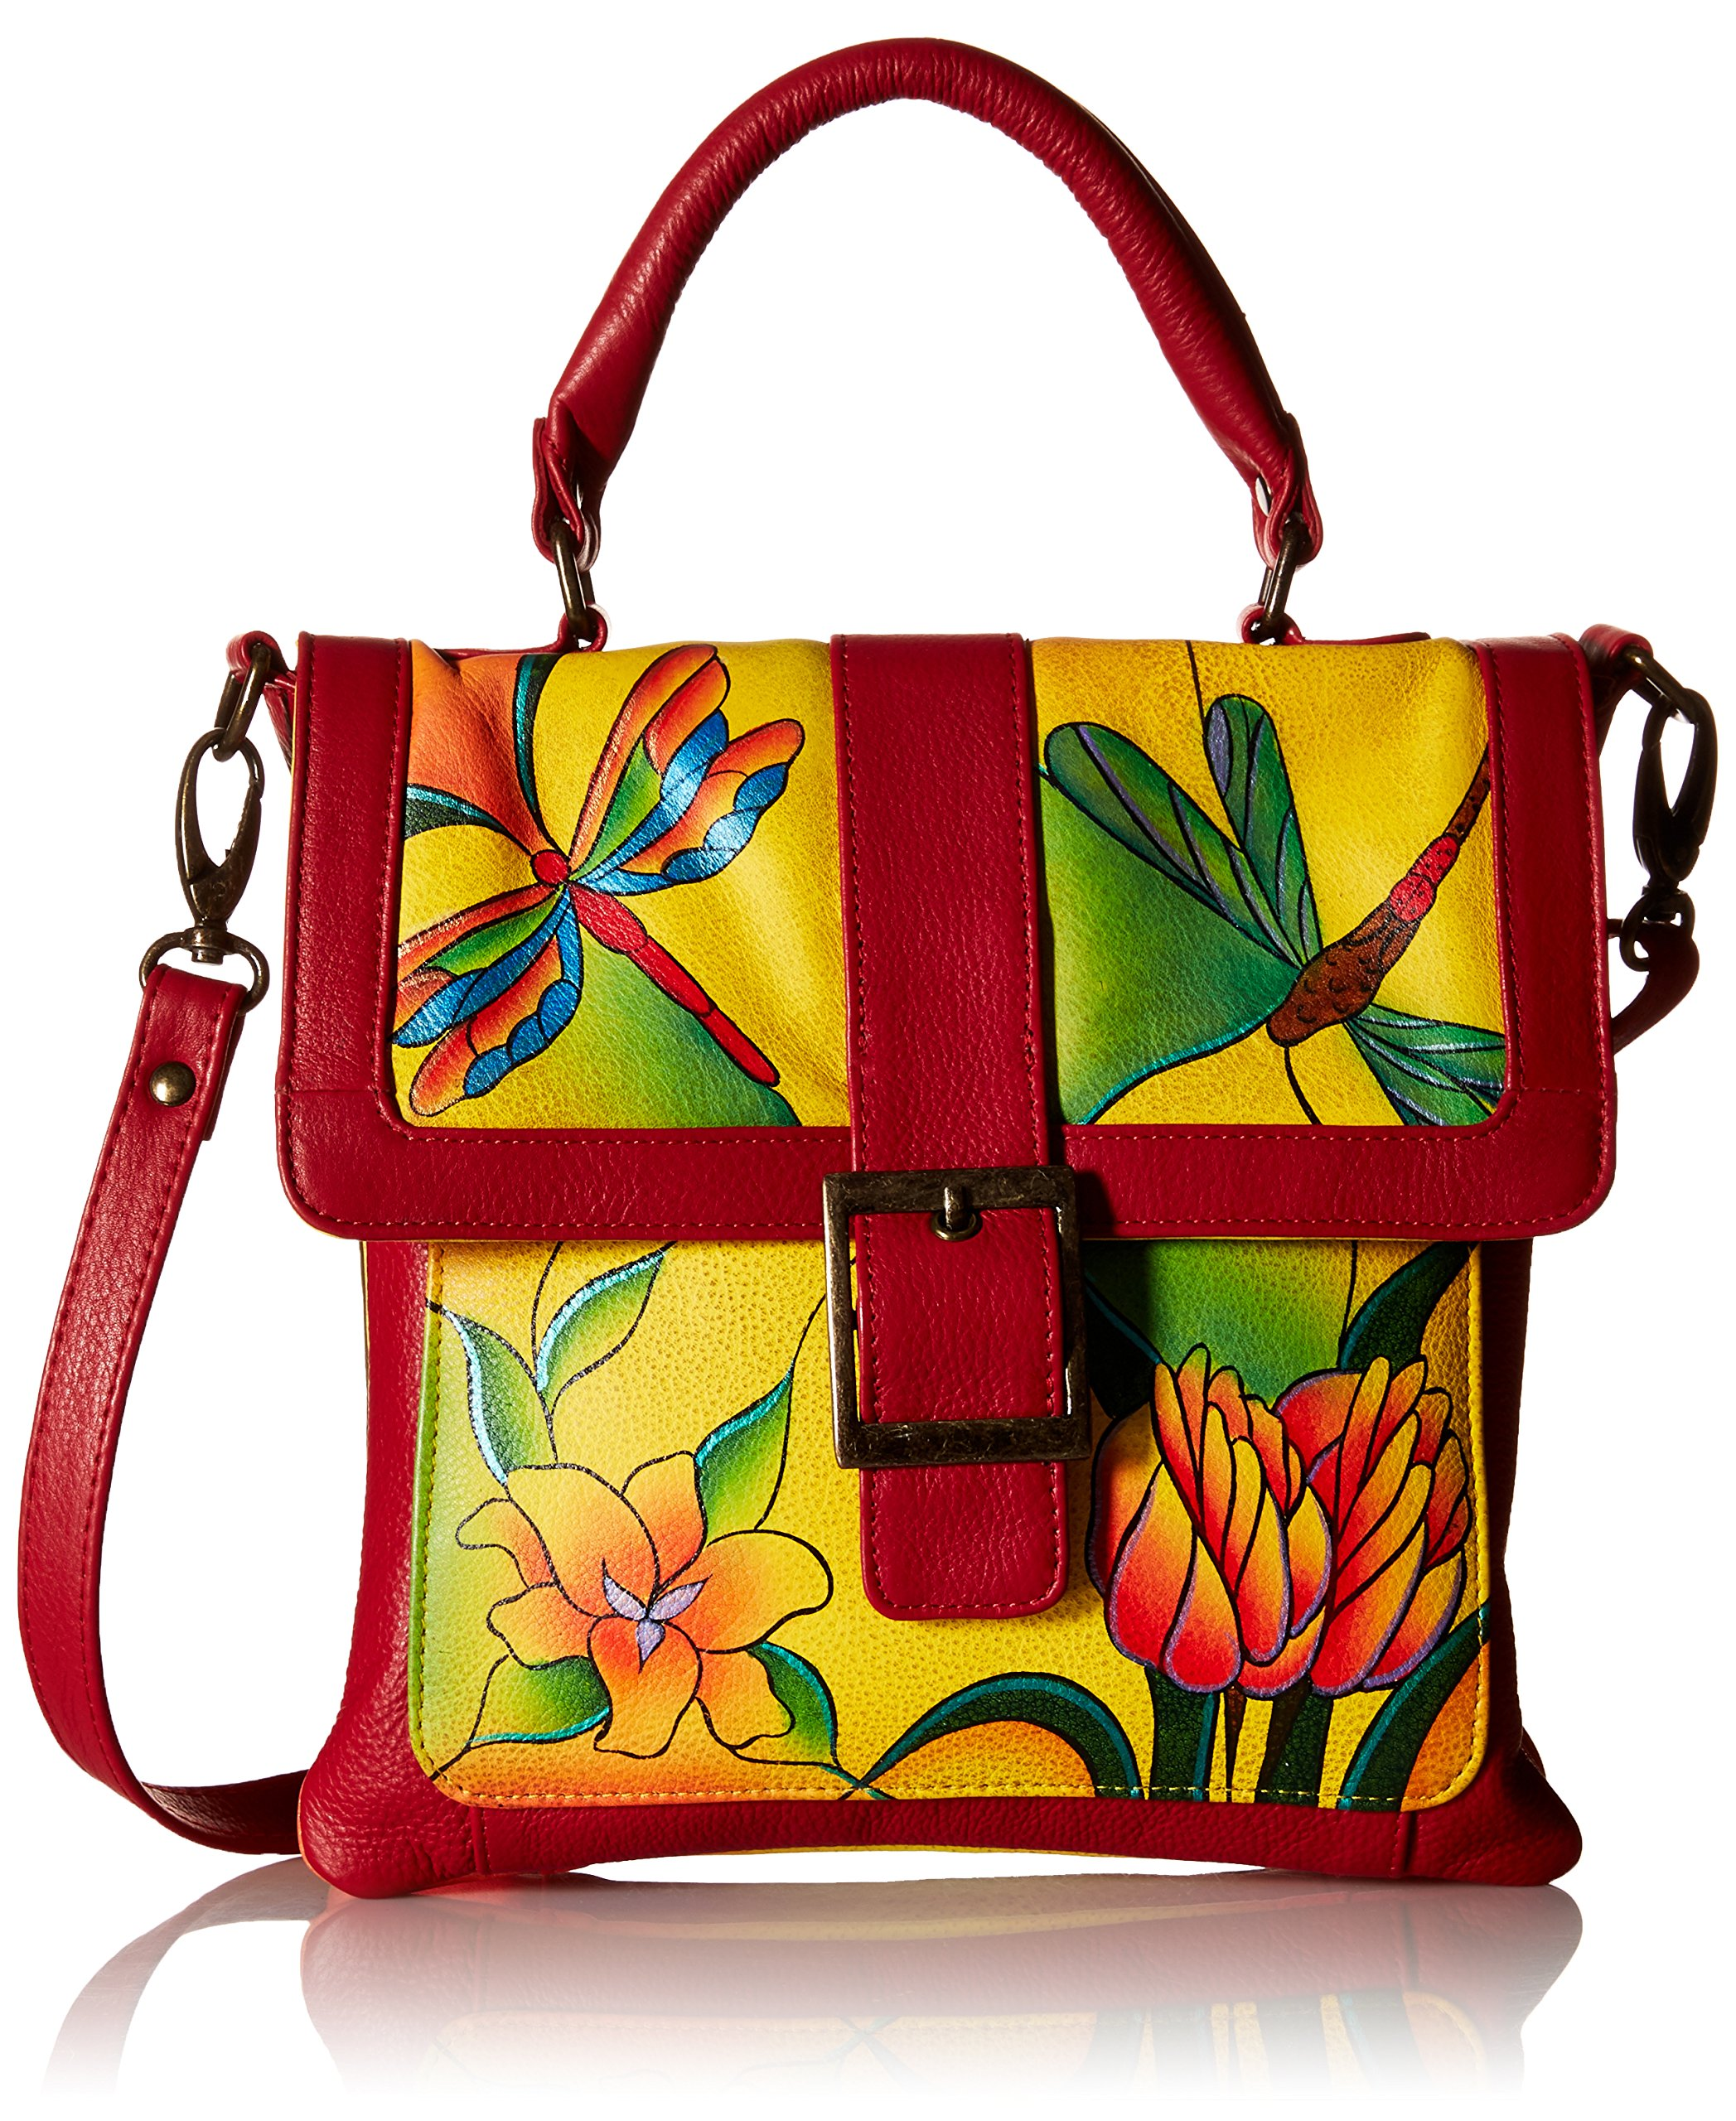 Anuschka Handpainted Leather 8074-DGP-Y Flap Saddle Bag, Dragonfly Glass Painting/Yellow, One Size by Anna by Anuschka